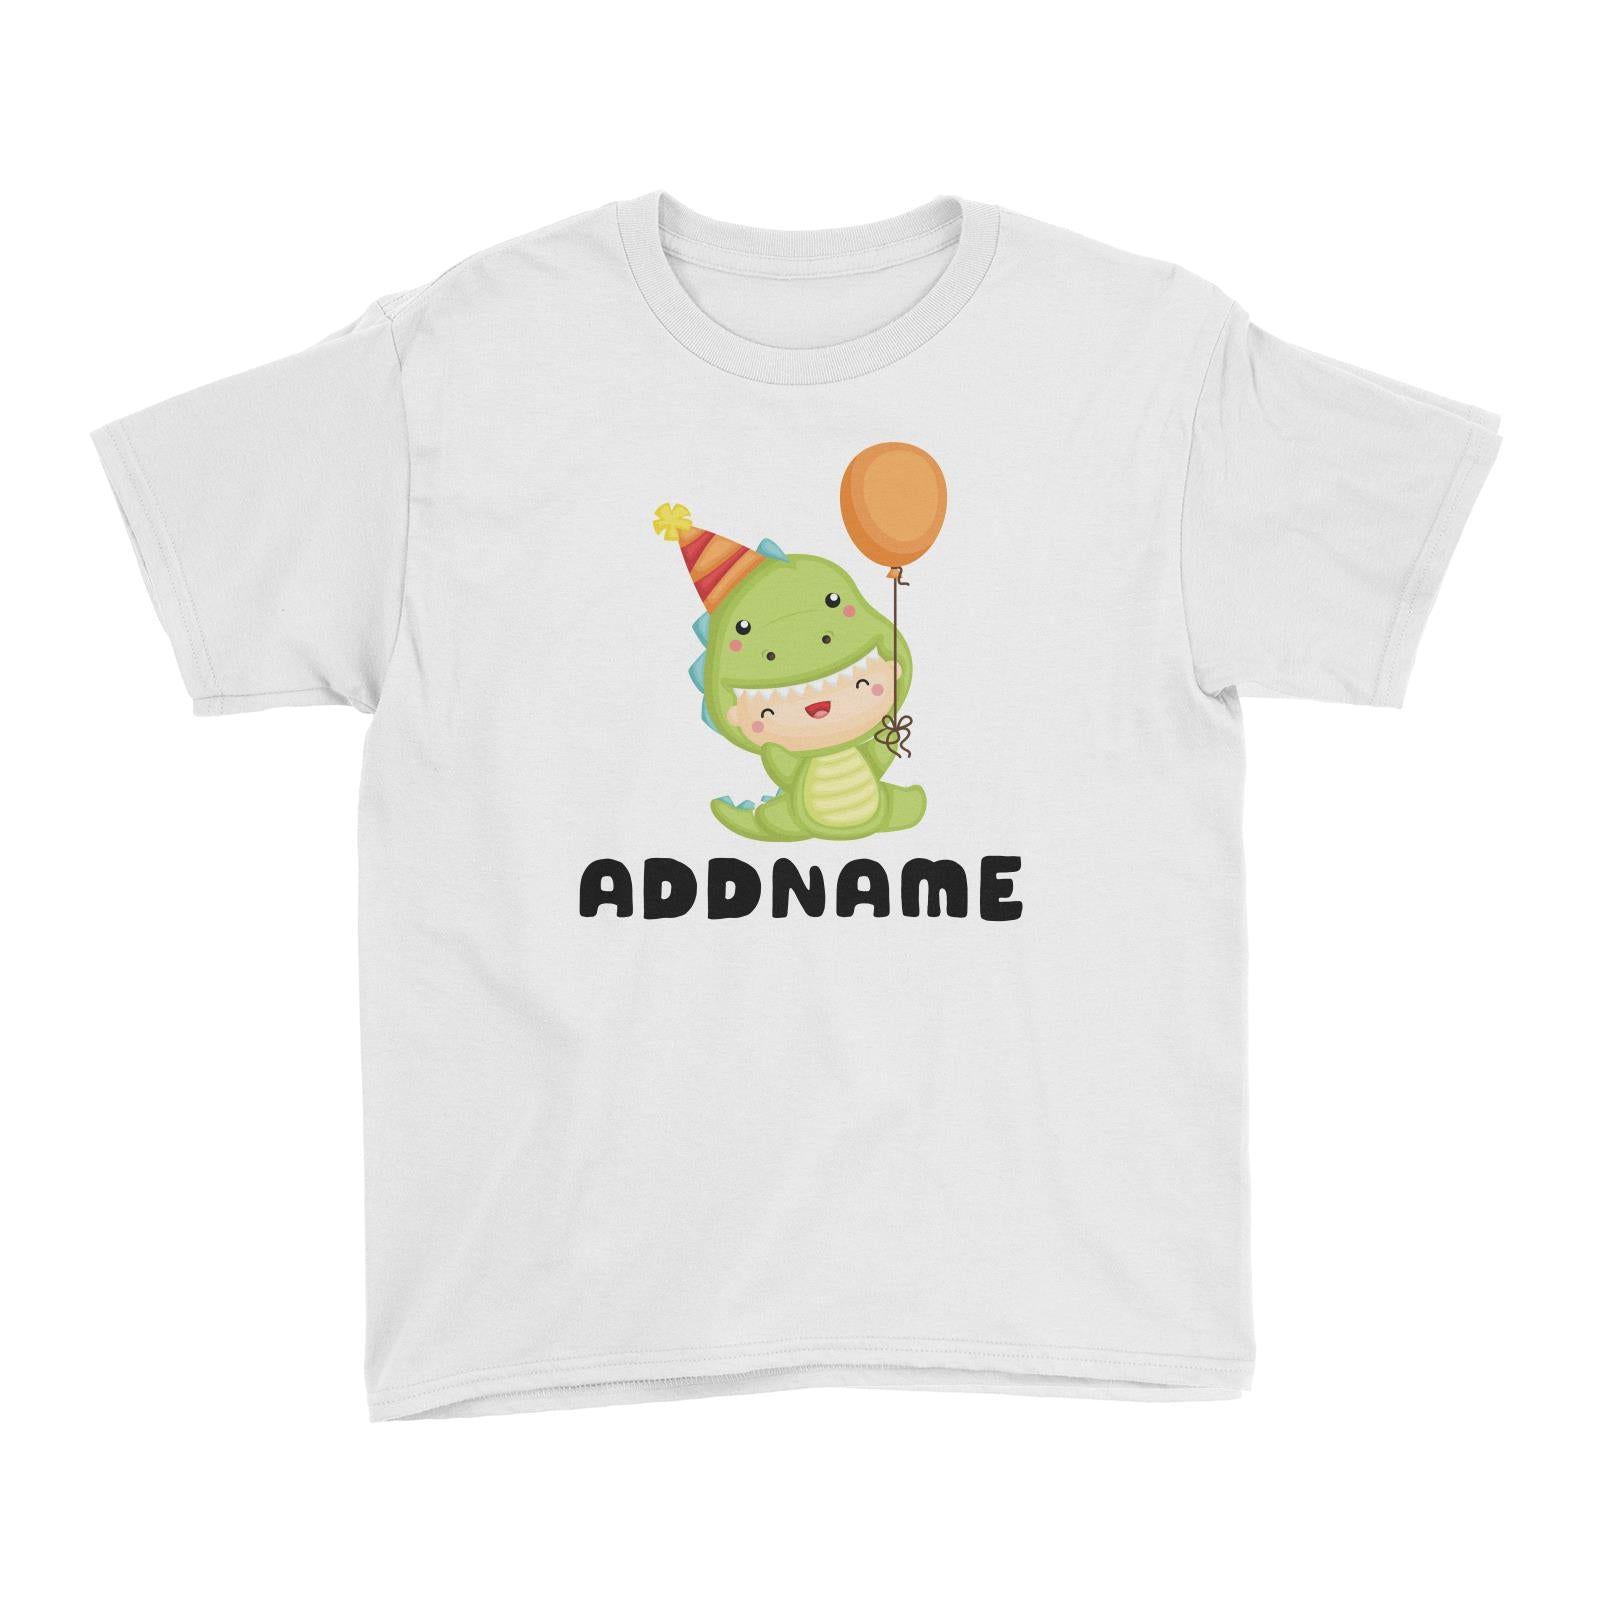 Birthday Dinosaur Happy Baby Wearing Dinosaur Suit And Party Hat Addname Kid's T-Shirt